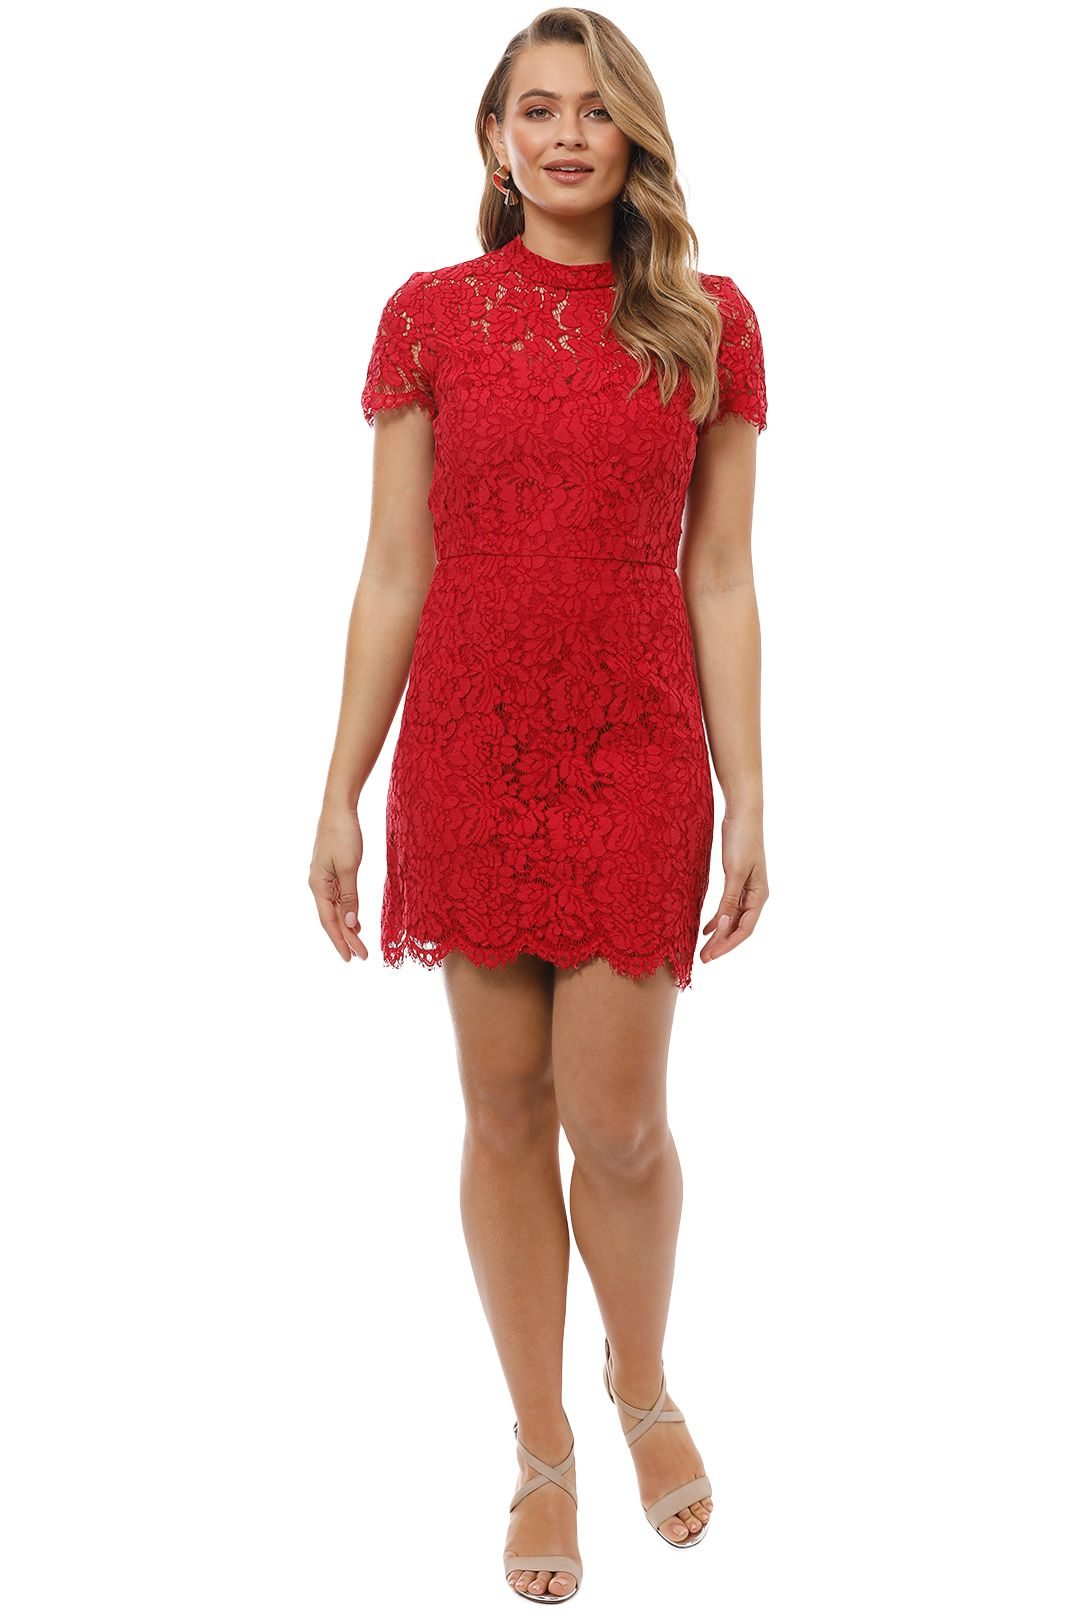 Maison Vivienne - Bitter Sweet High Neck Mini Dress - Red - Front